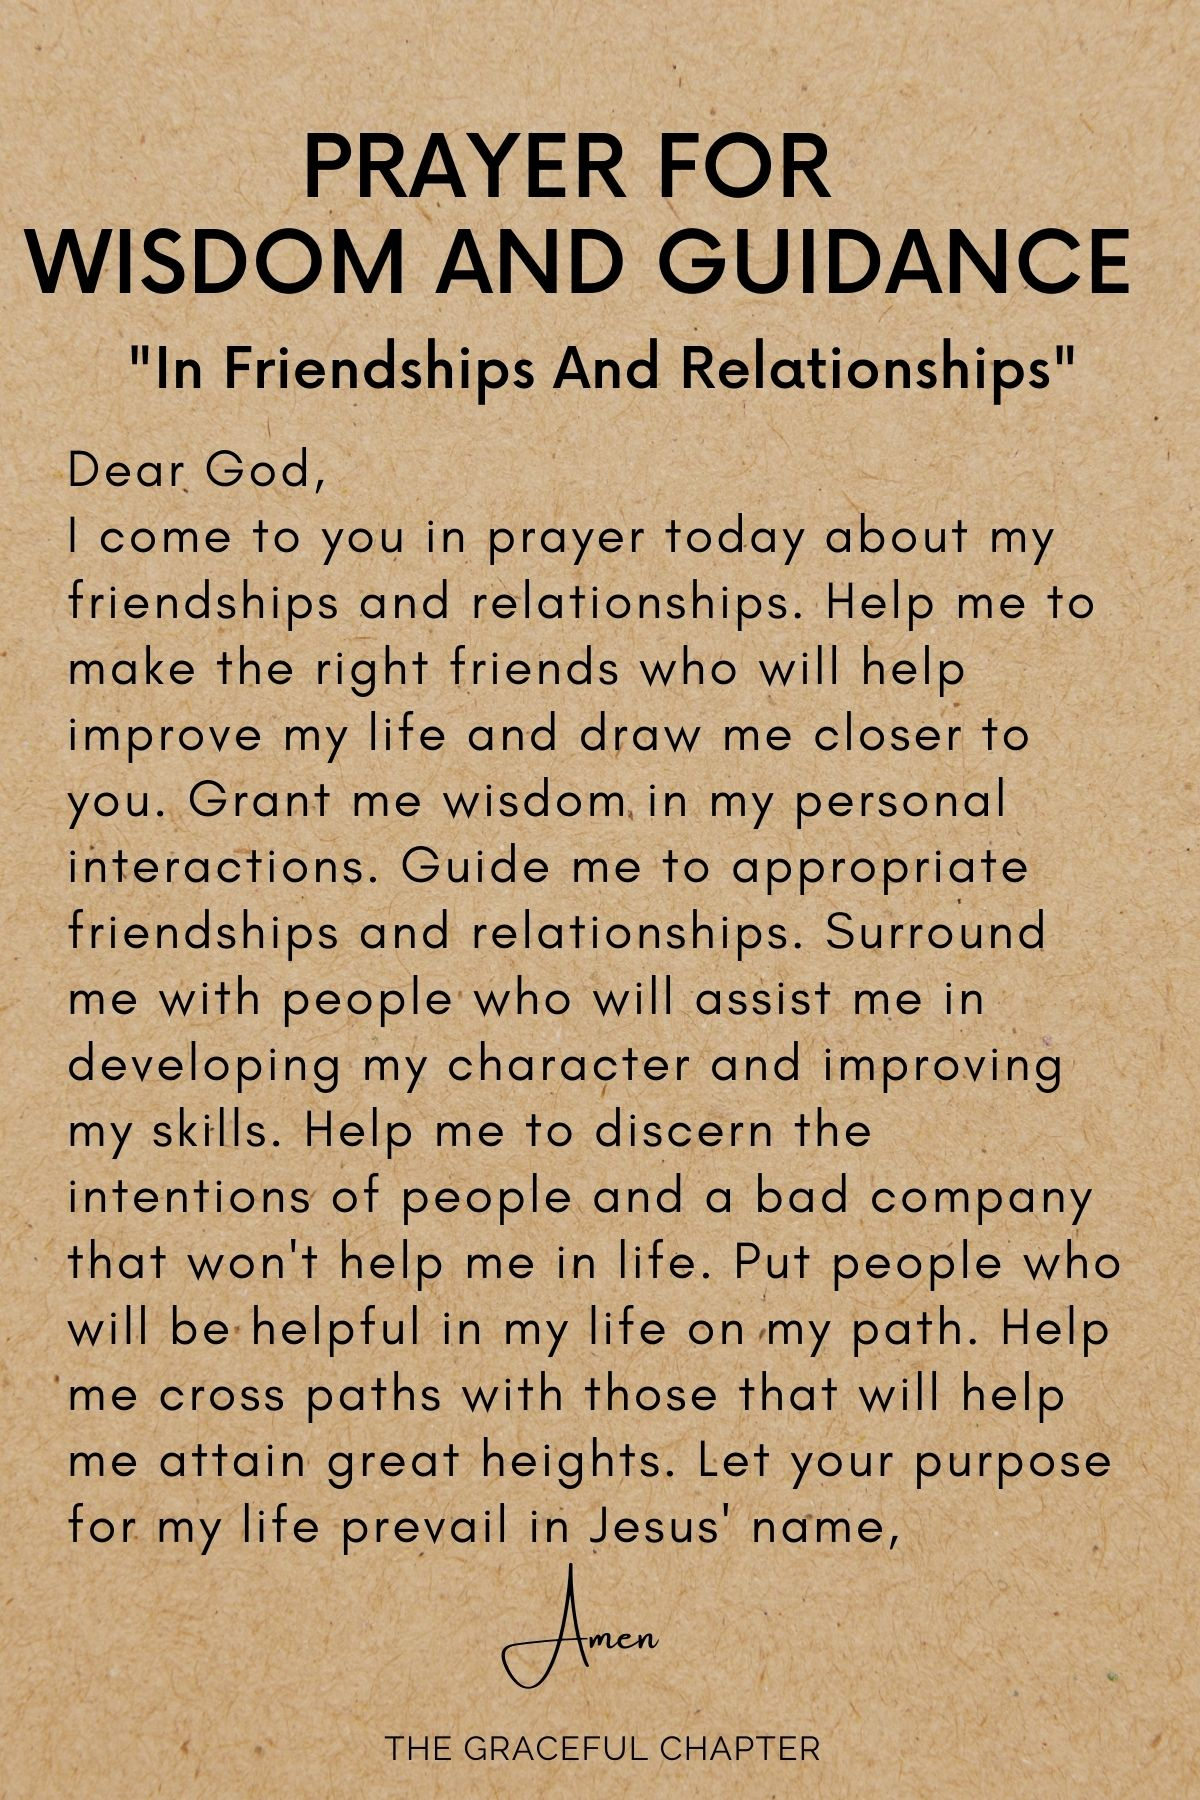 Wisdom and guidance in friendships and relationships